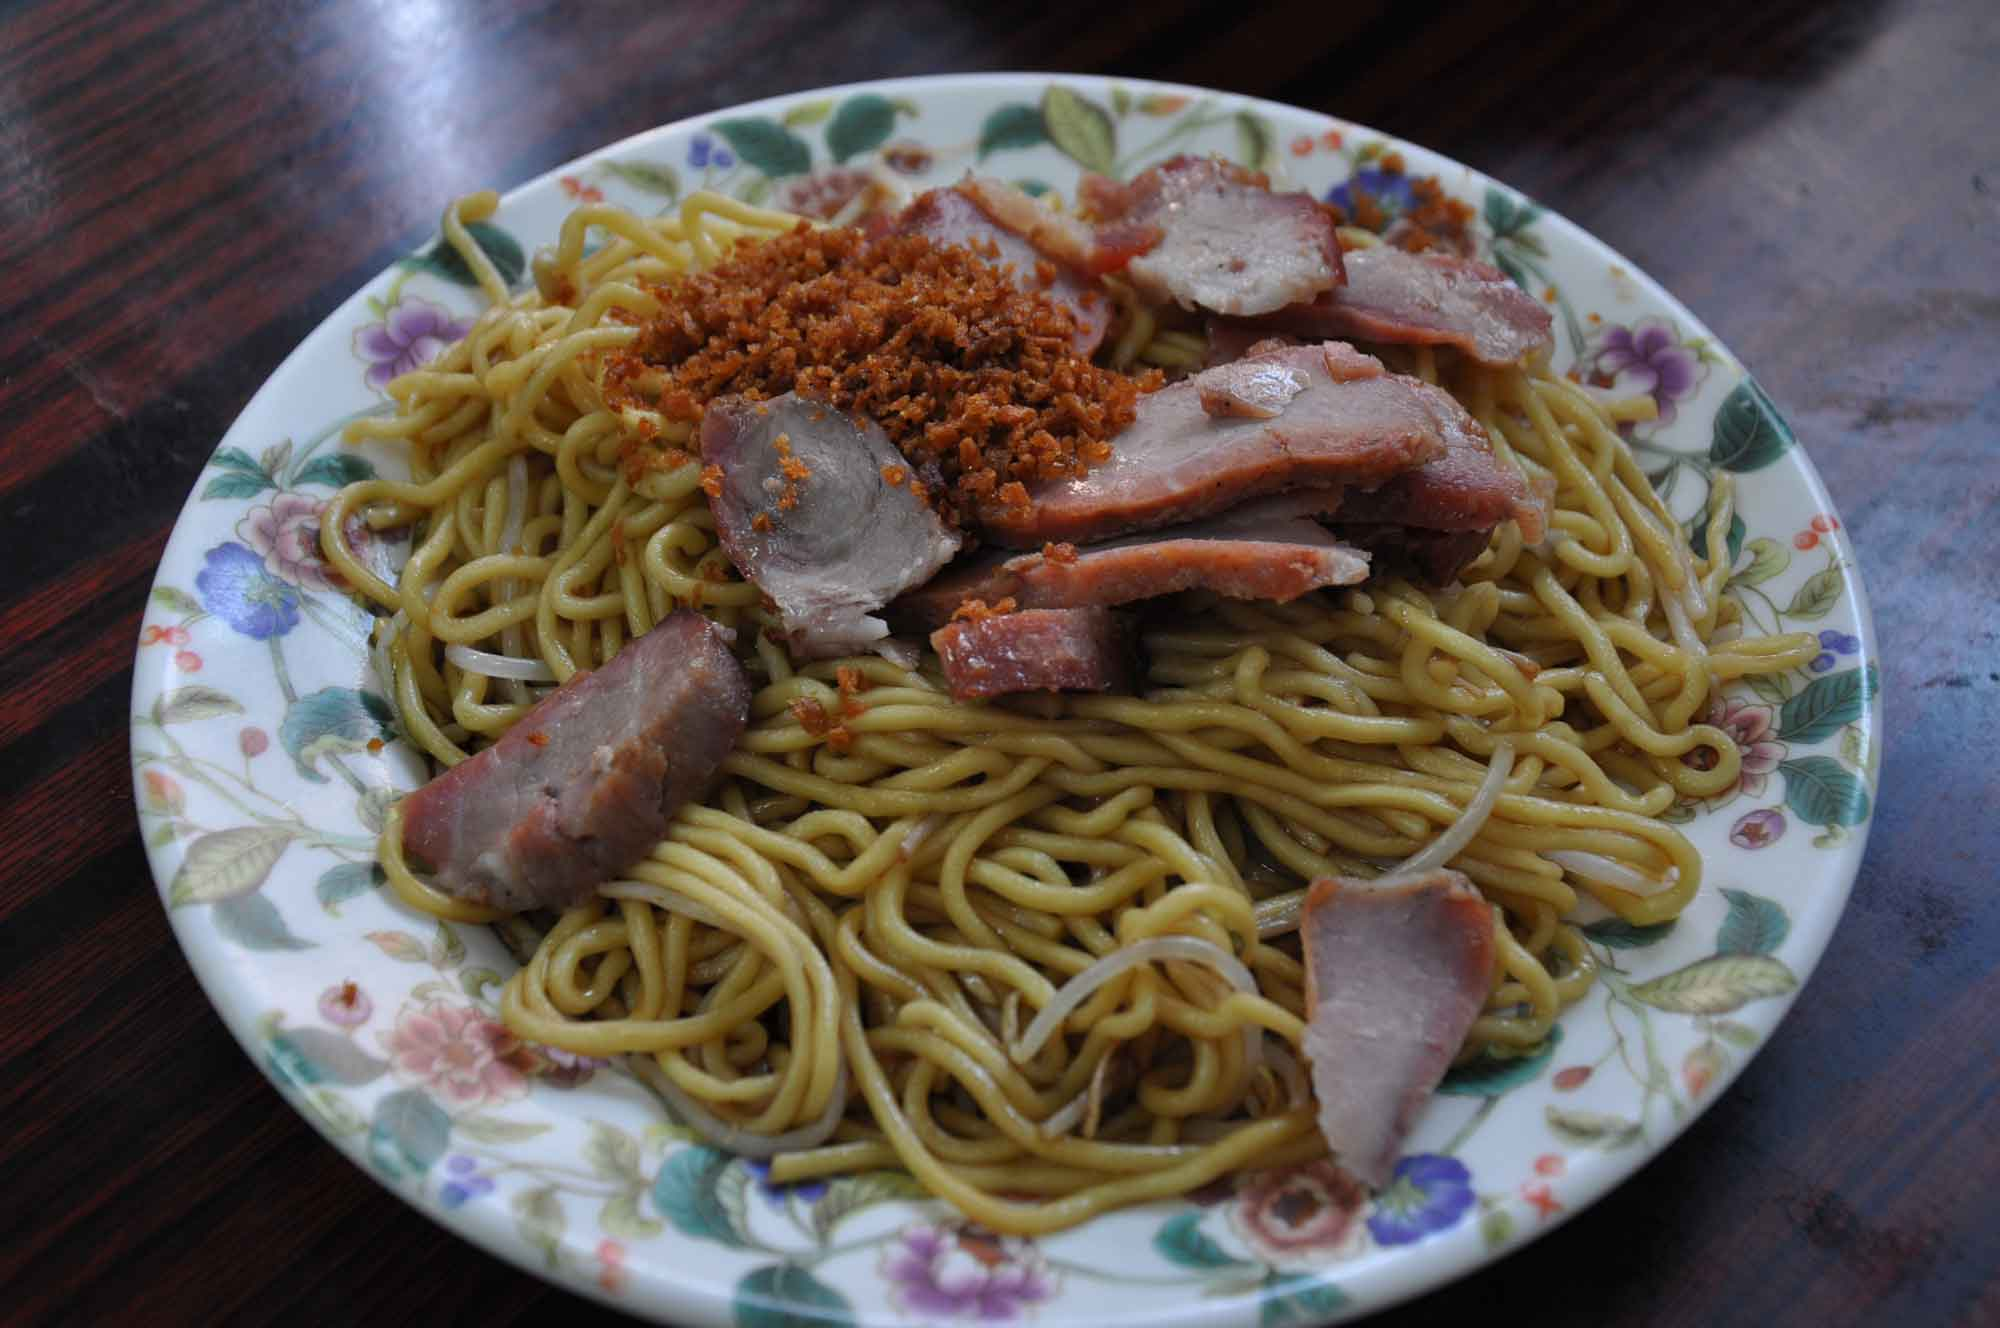 Seng Kuan rice noodles with barbecue pork